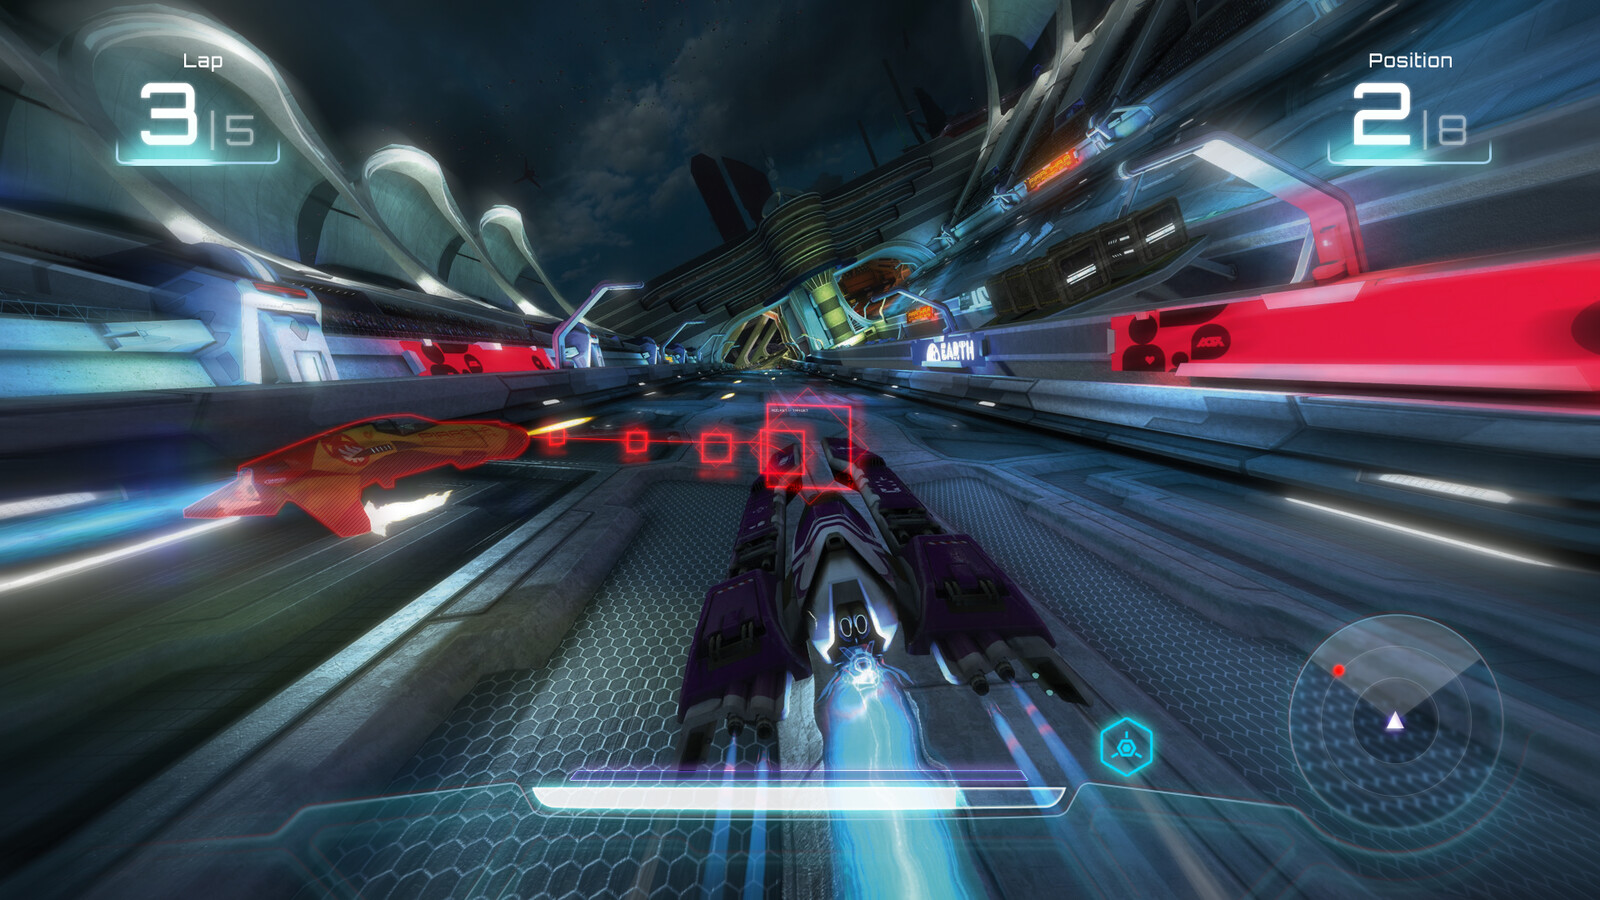 Wipeout HUD Concept '14